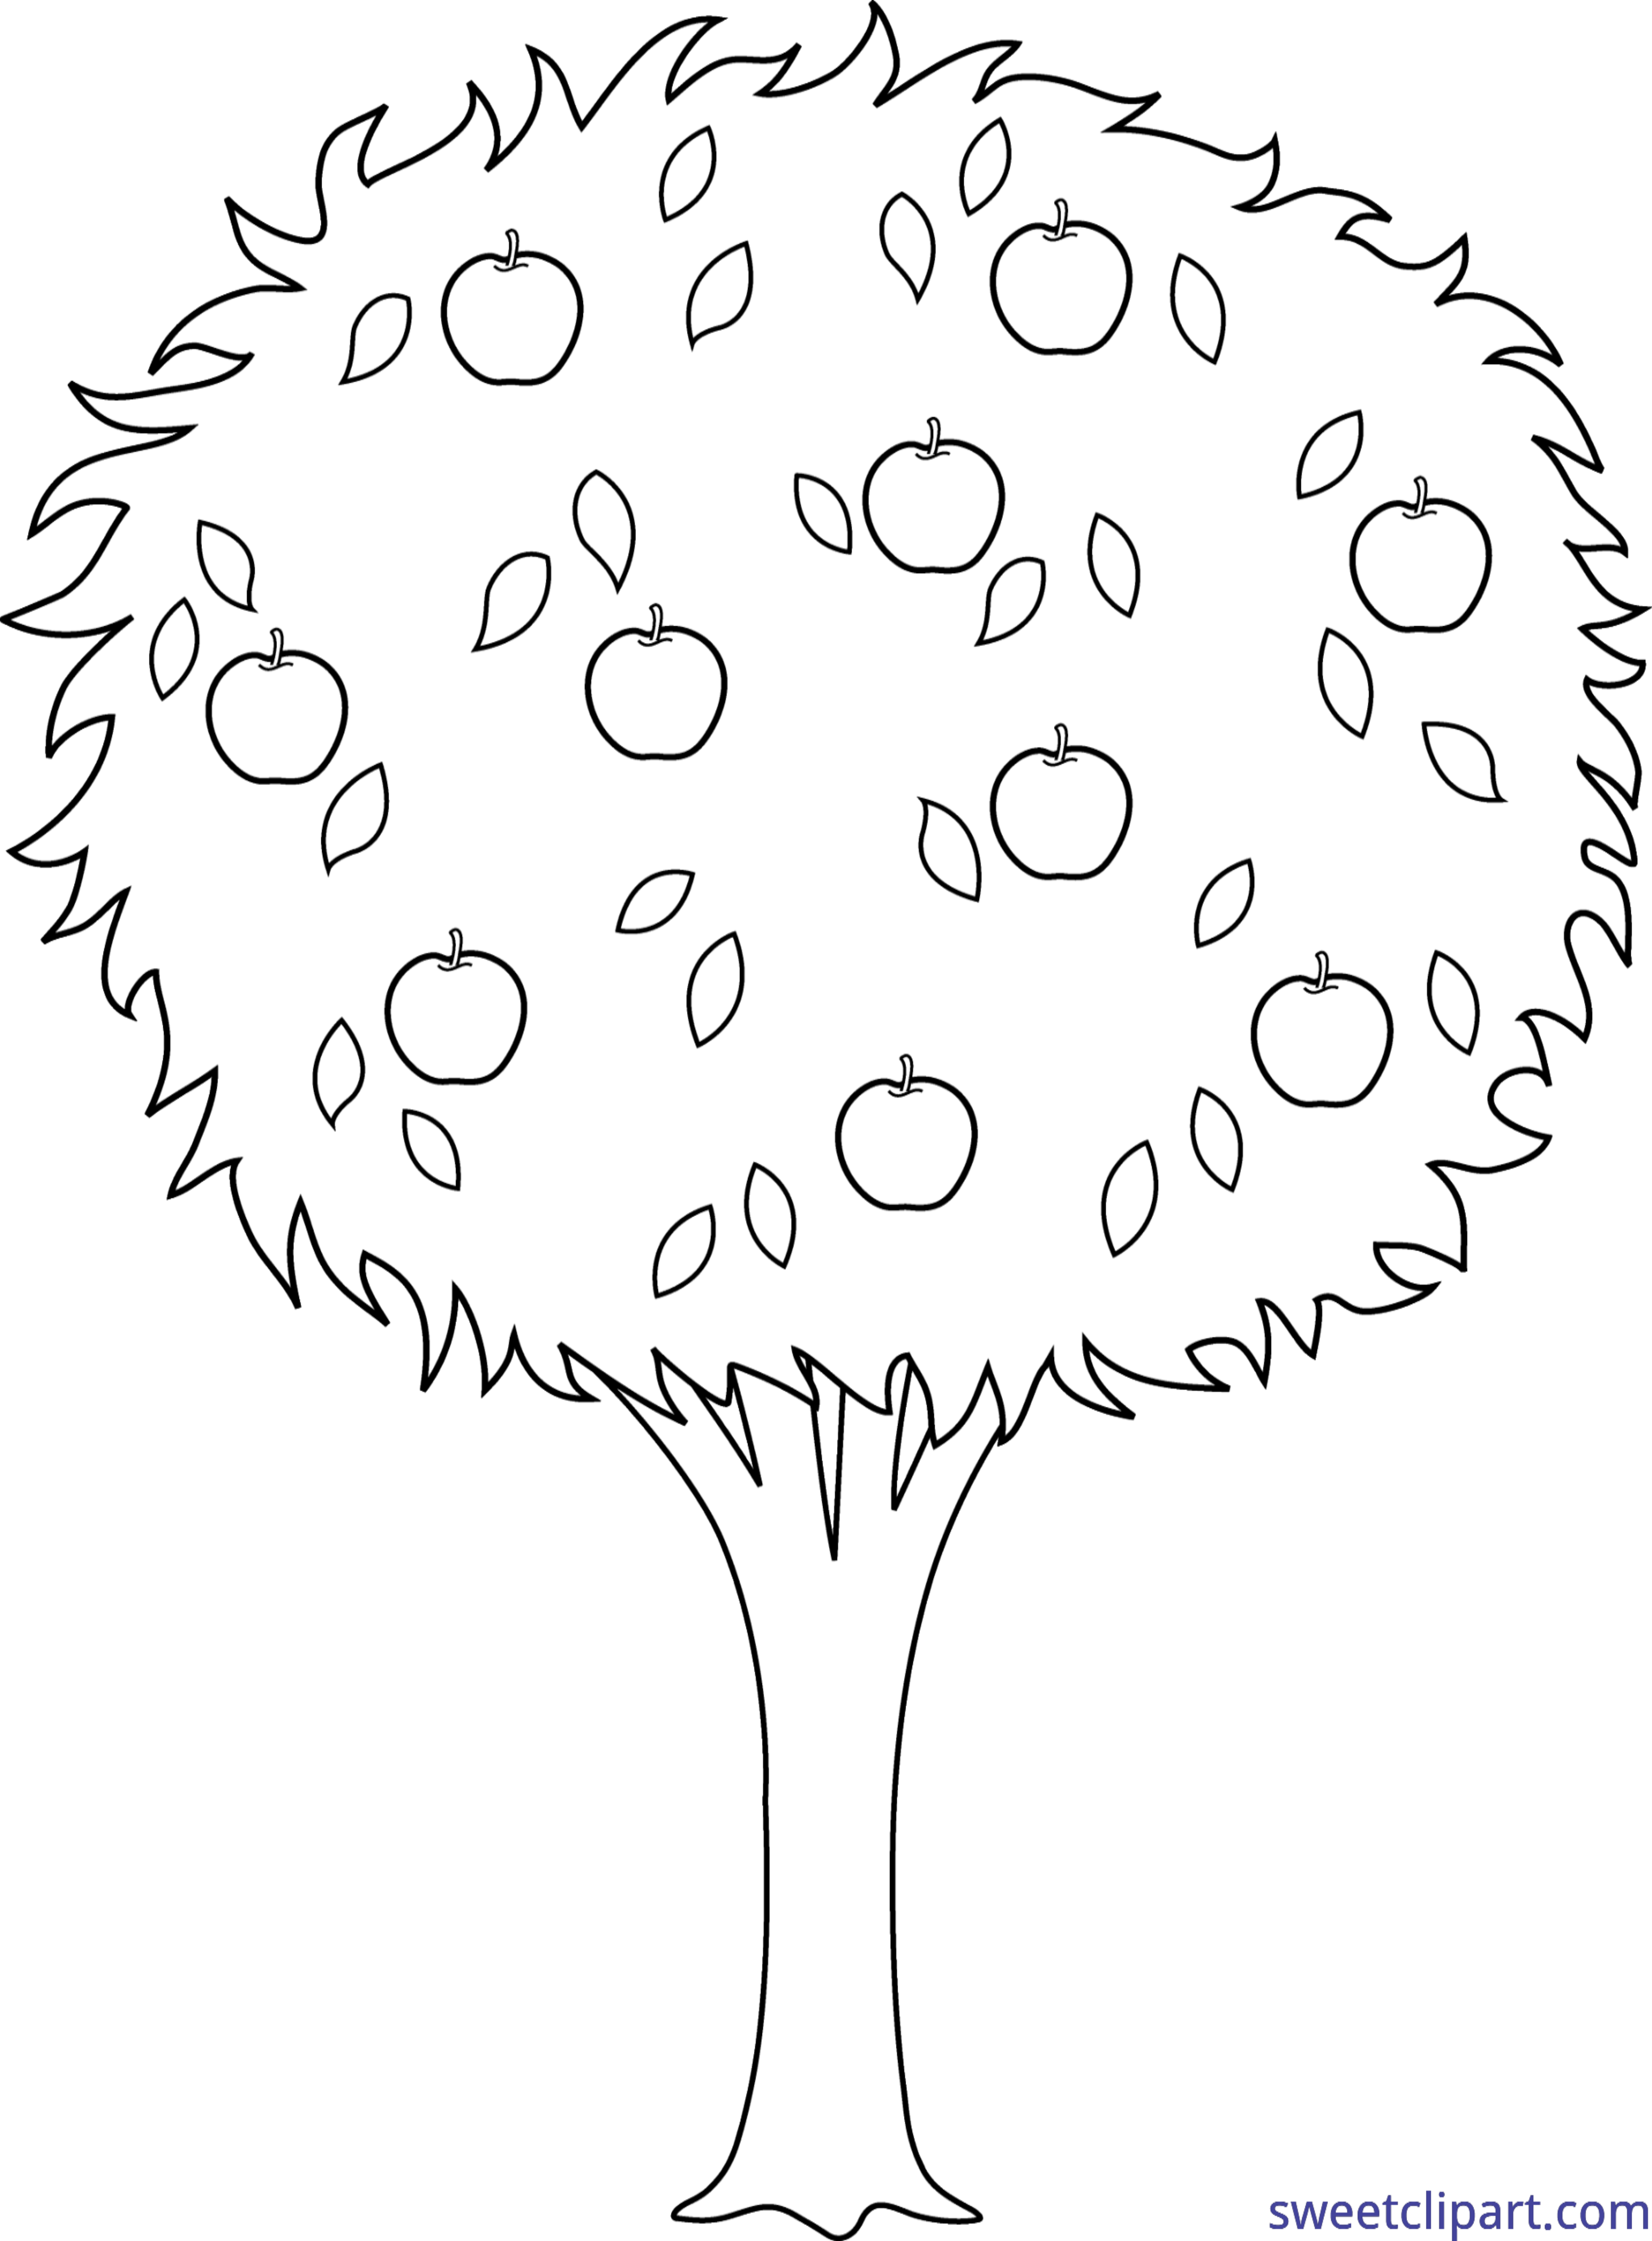 Apple tree black and white clipart vector stock Apple Tree Lineart Clip Art - Sweet Clip Art vector stock